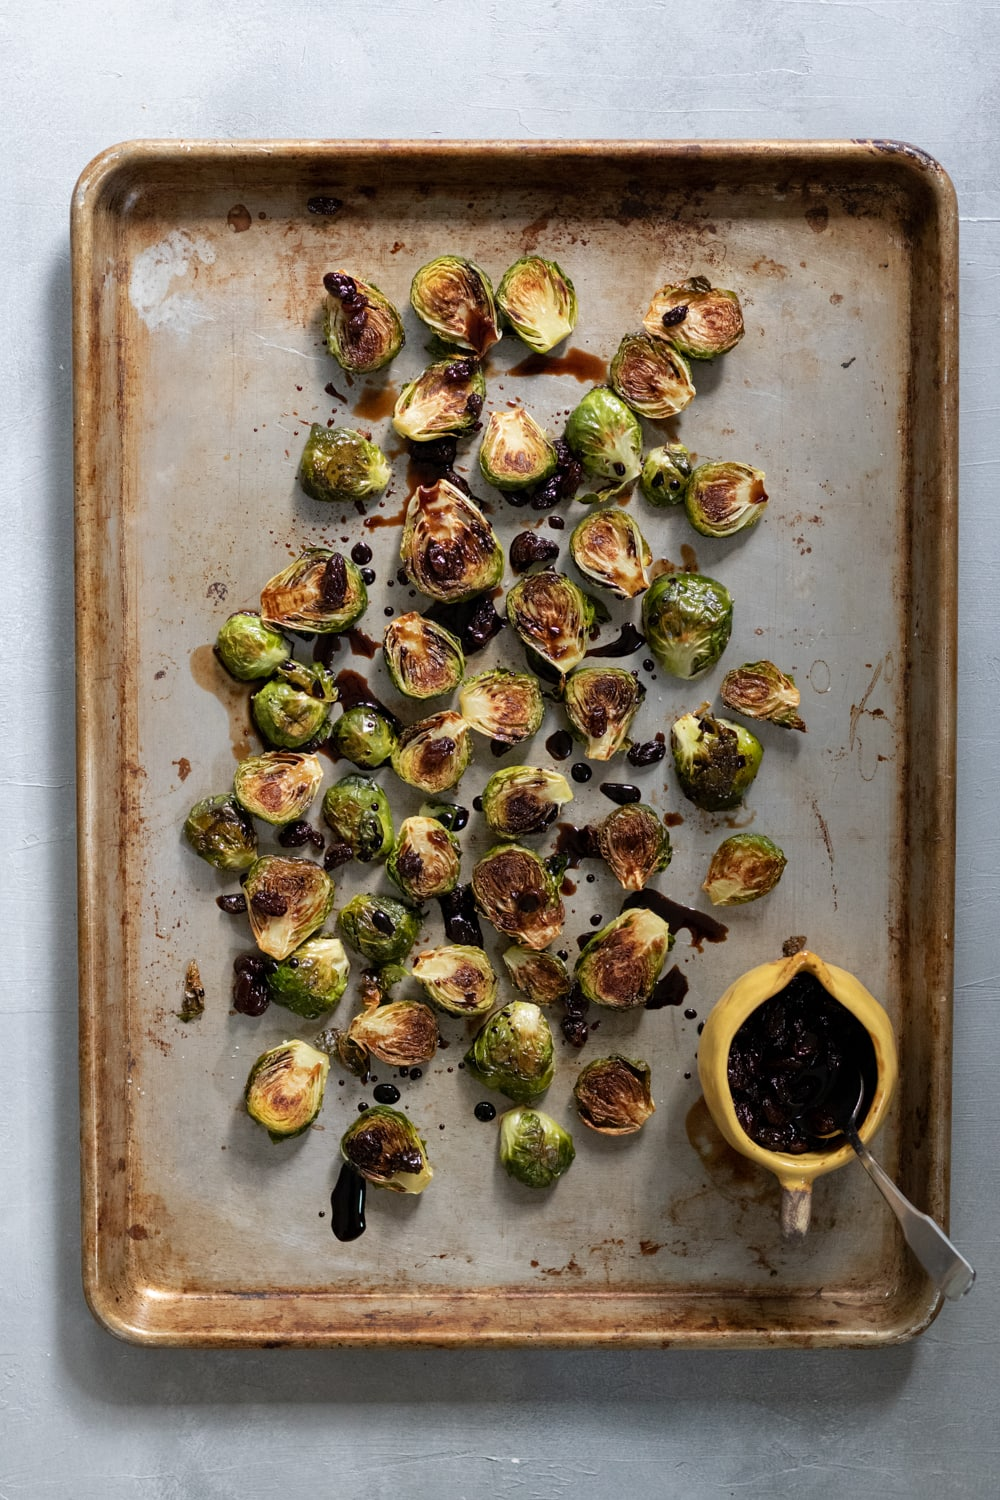 roasted brussels sprouts and balsamic glaze on a sheet pan